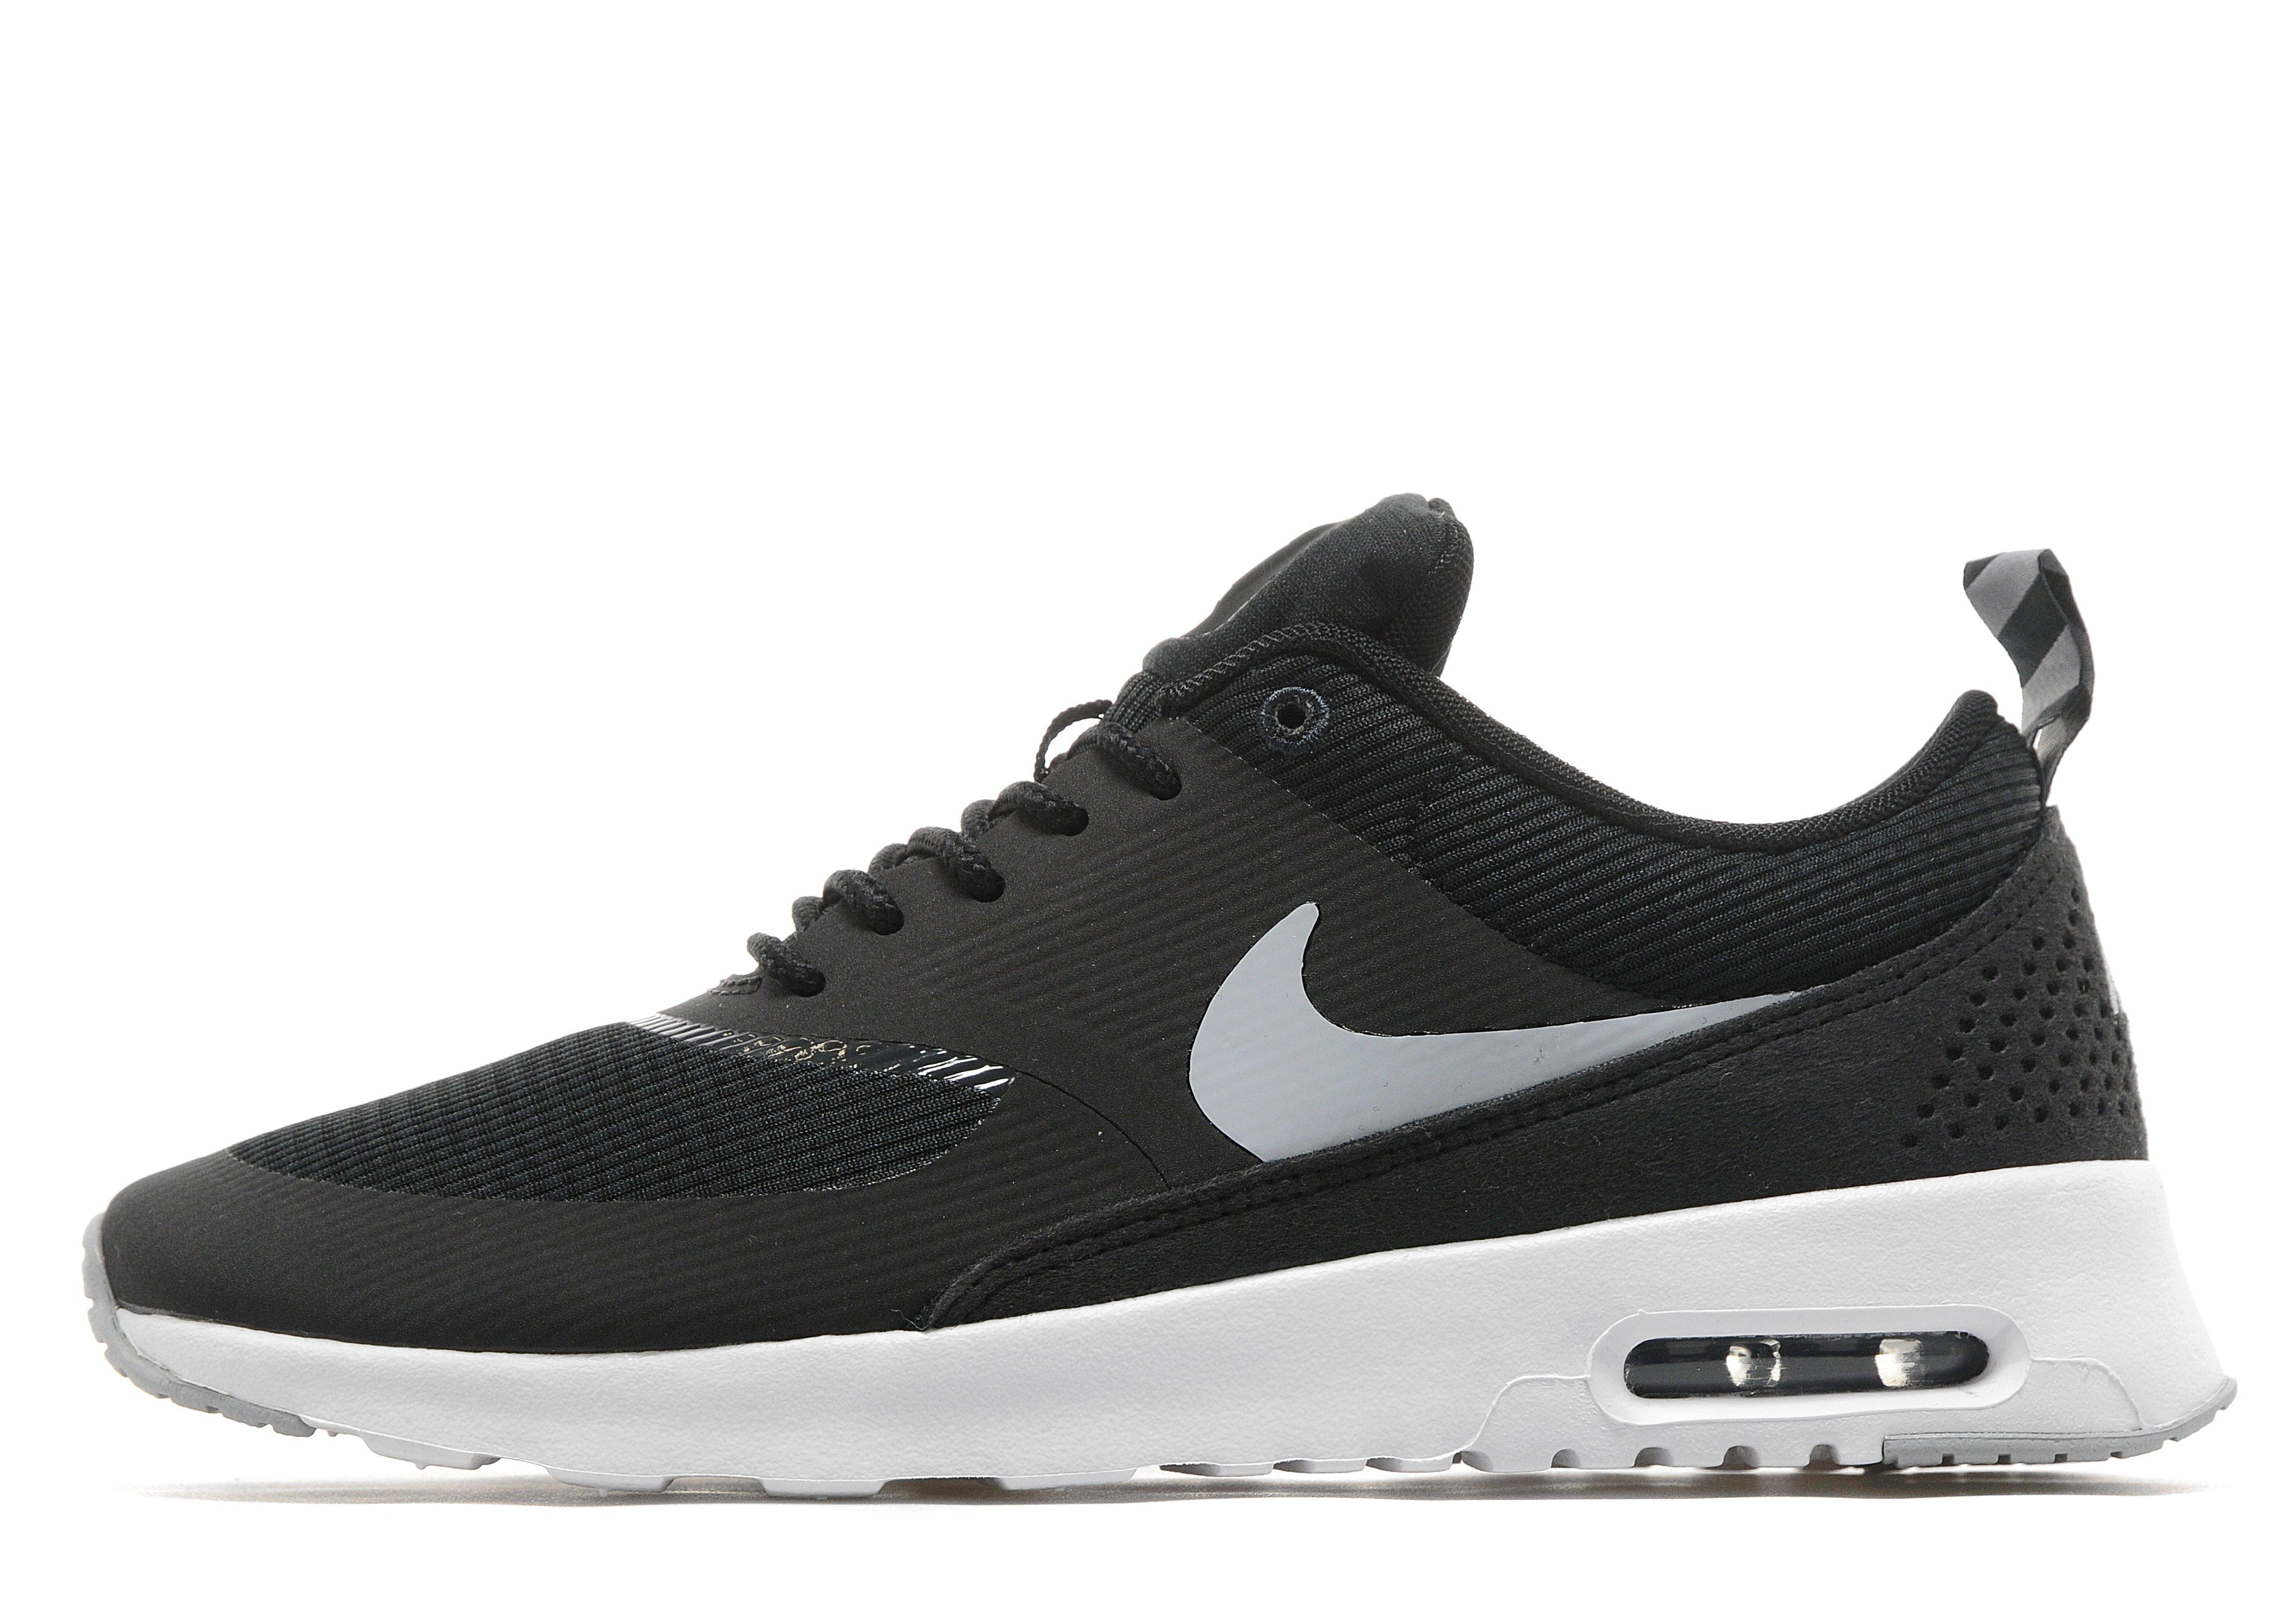 Black Nike Trainers With White Tick